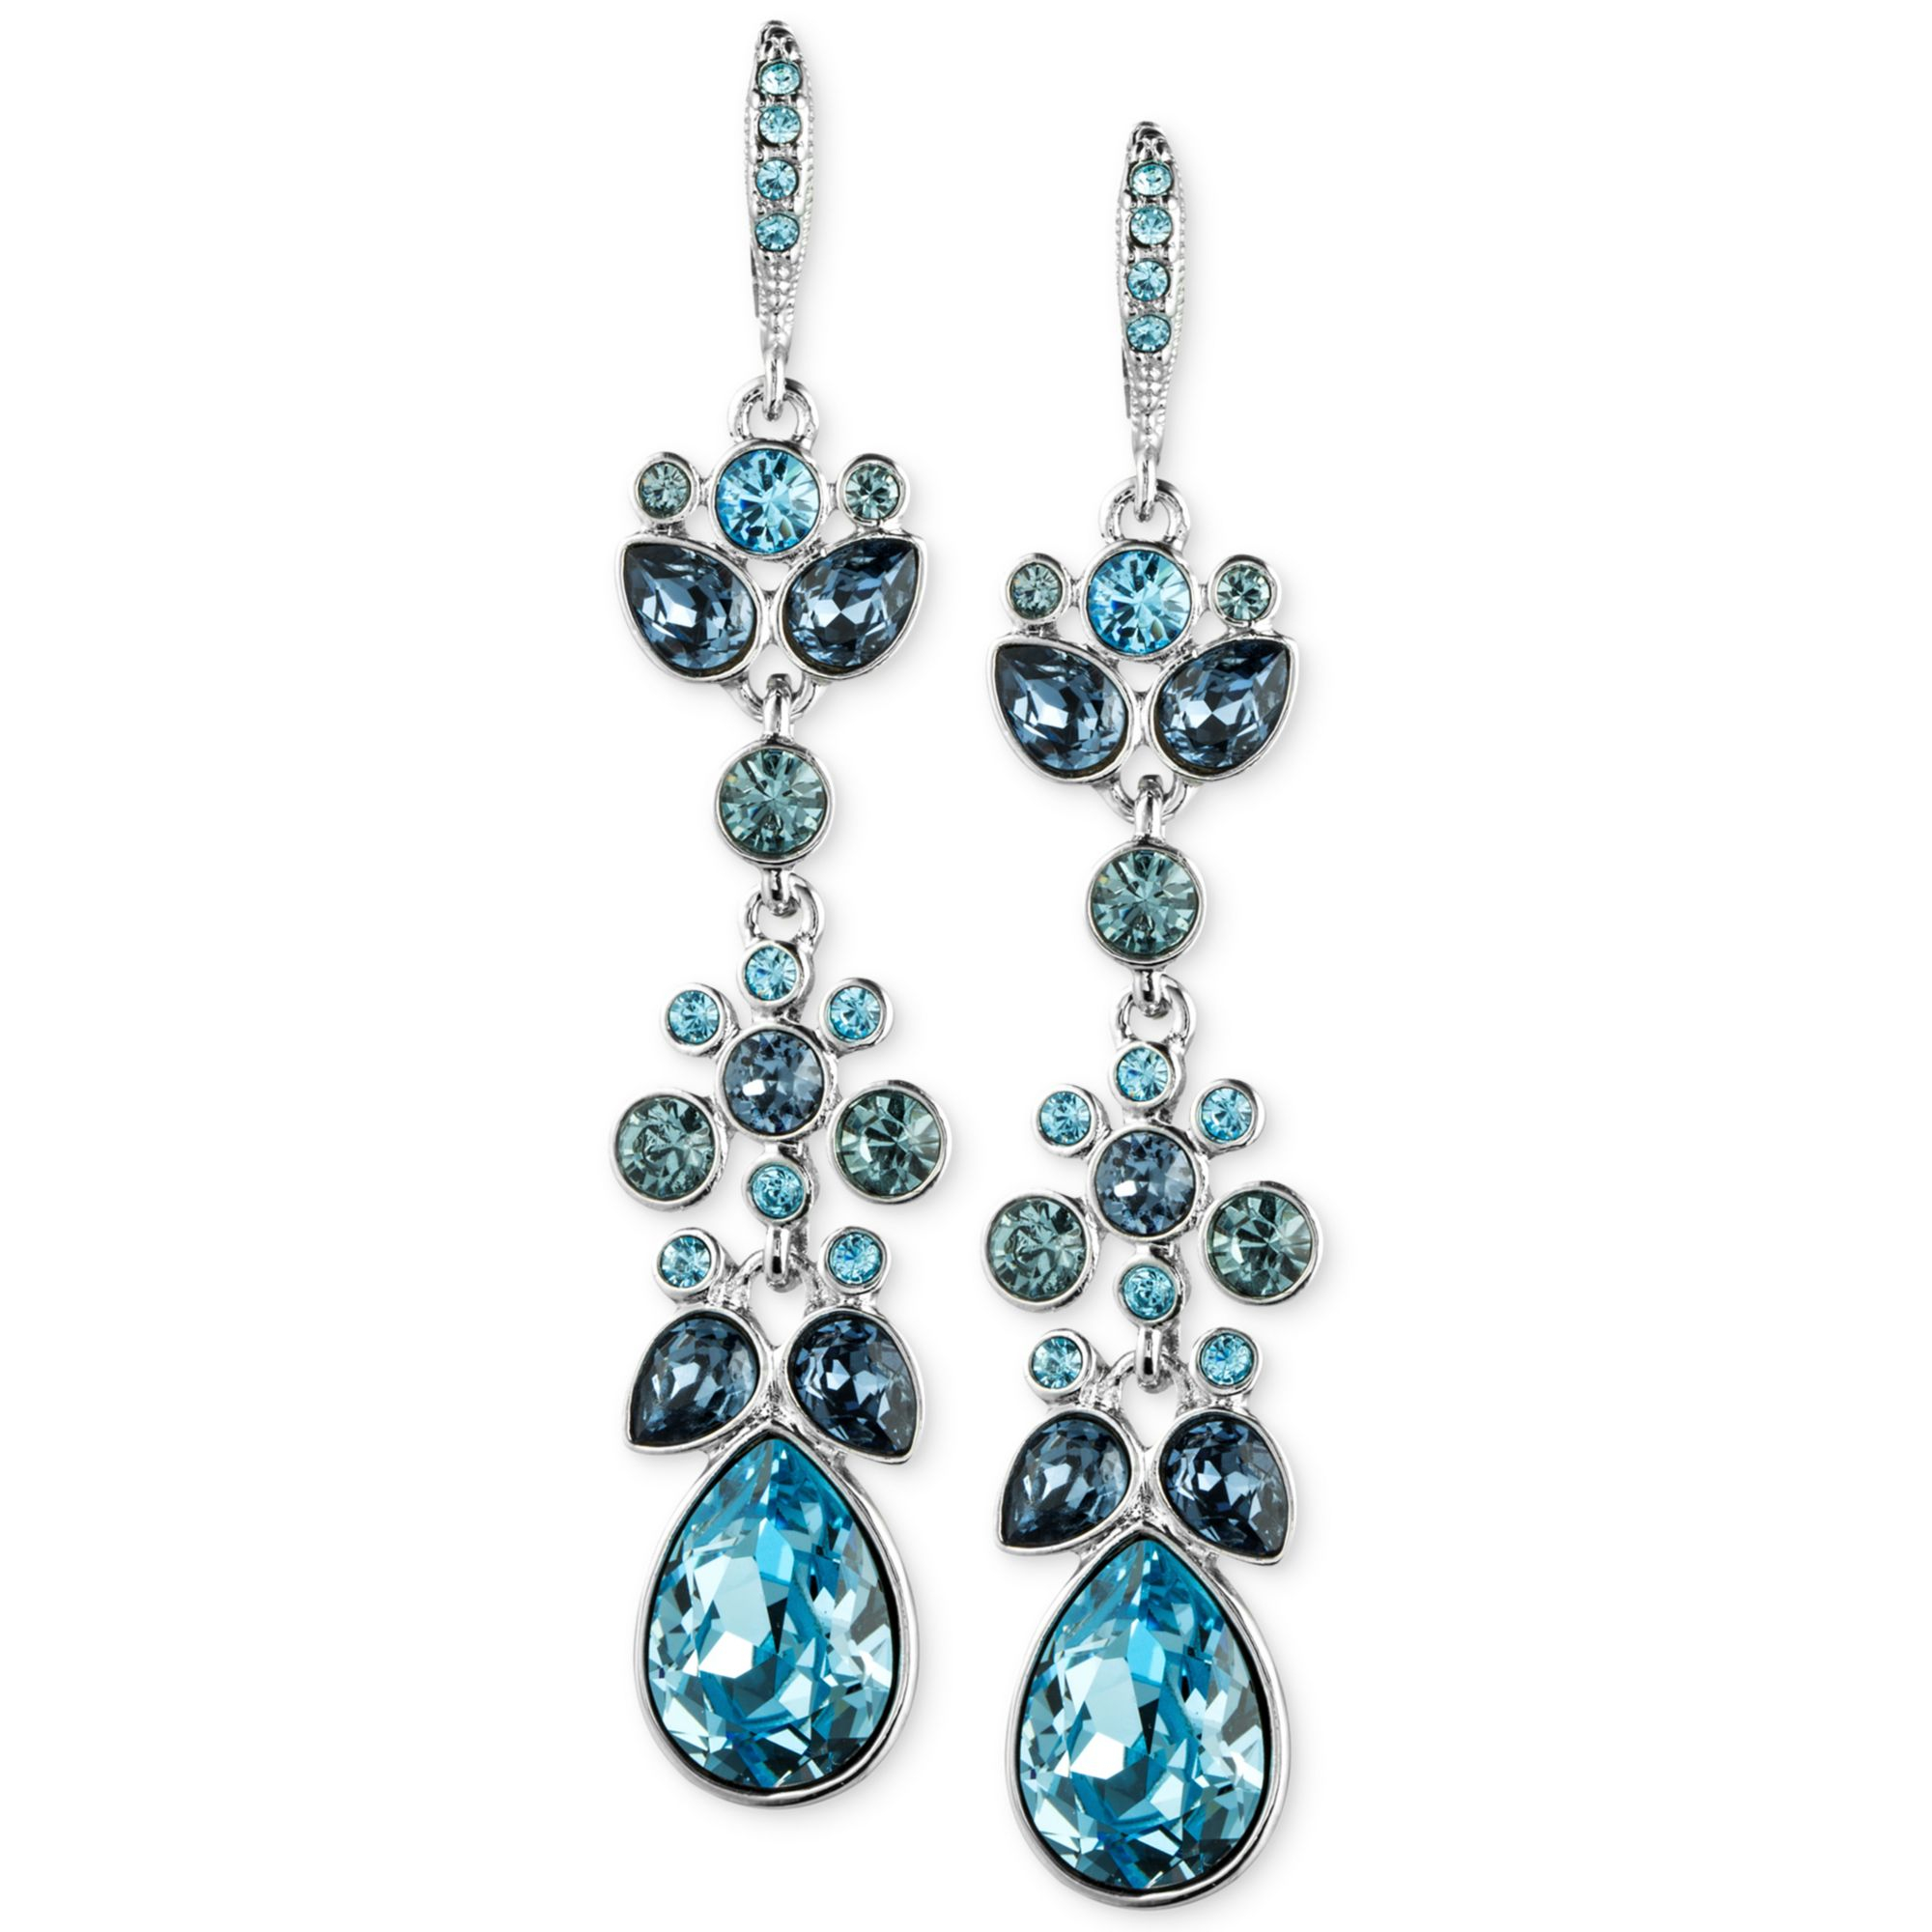 Red Givenchy Chandelier Earrings: Givenchy Blue Swarovski Crystal Chandelier Earrings